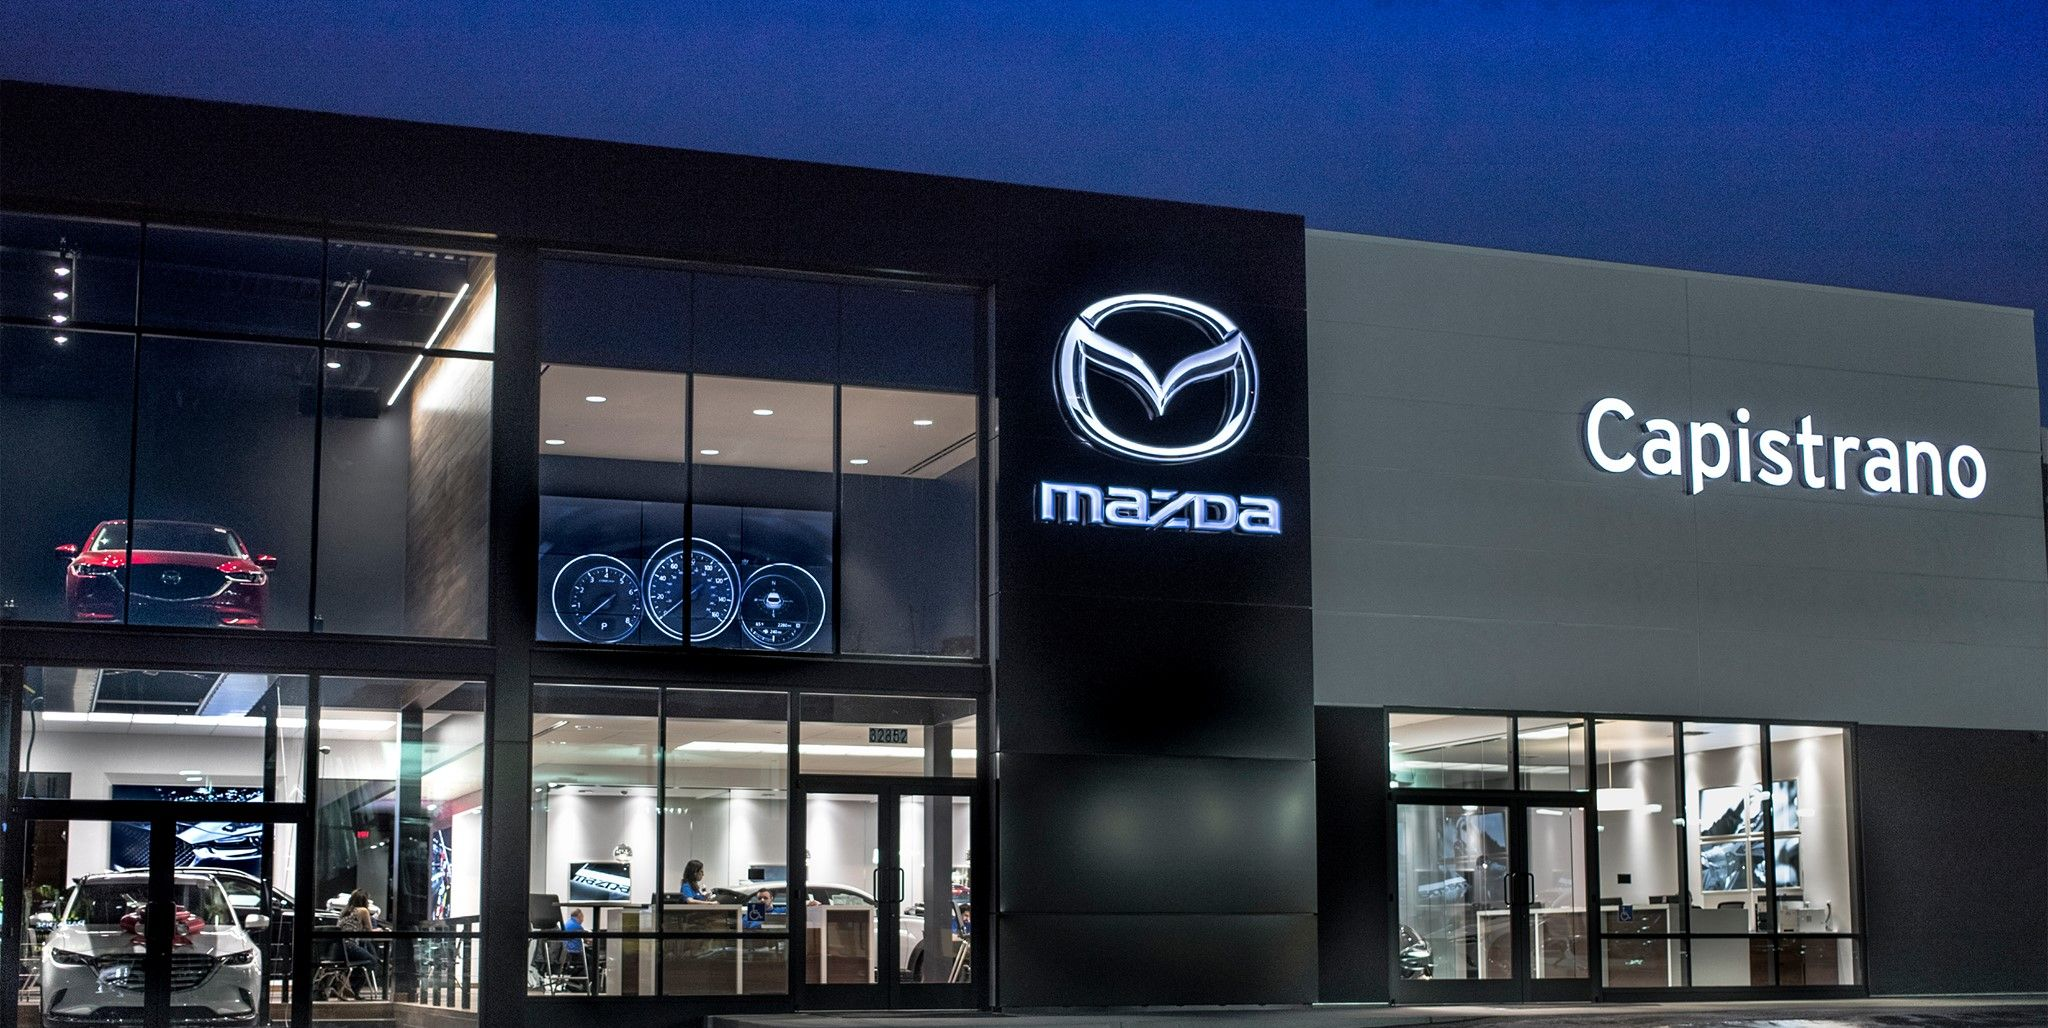 Mazda Giving Free Oil Changes, Car Cleaning to Health-Care Workers